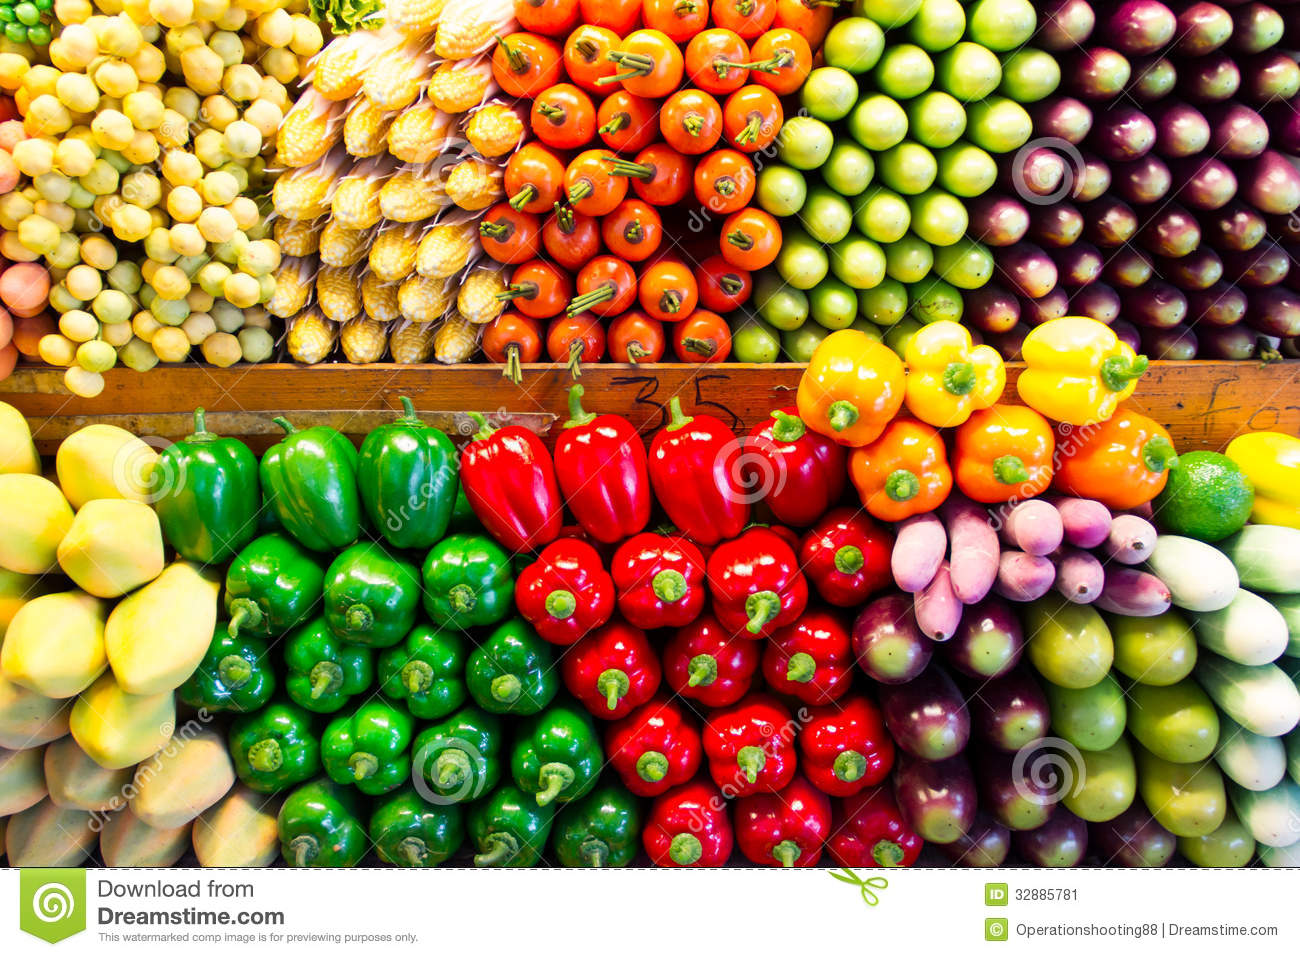 Fake Vegetables And Fruits Stock Image - Image: 32885781